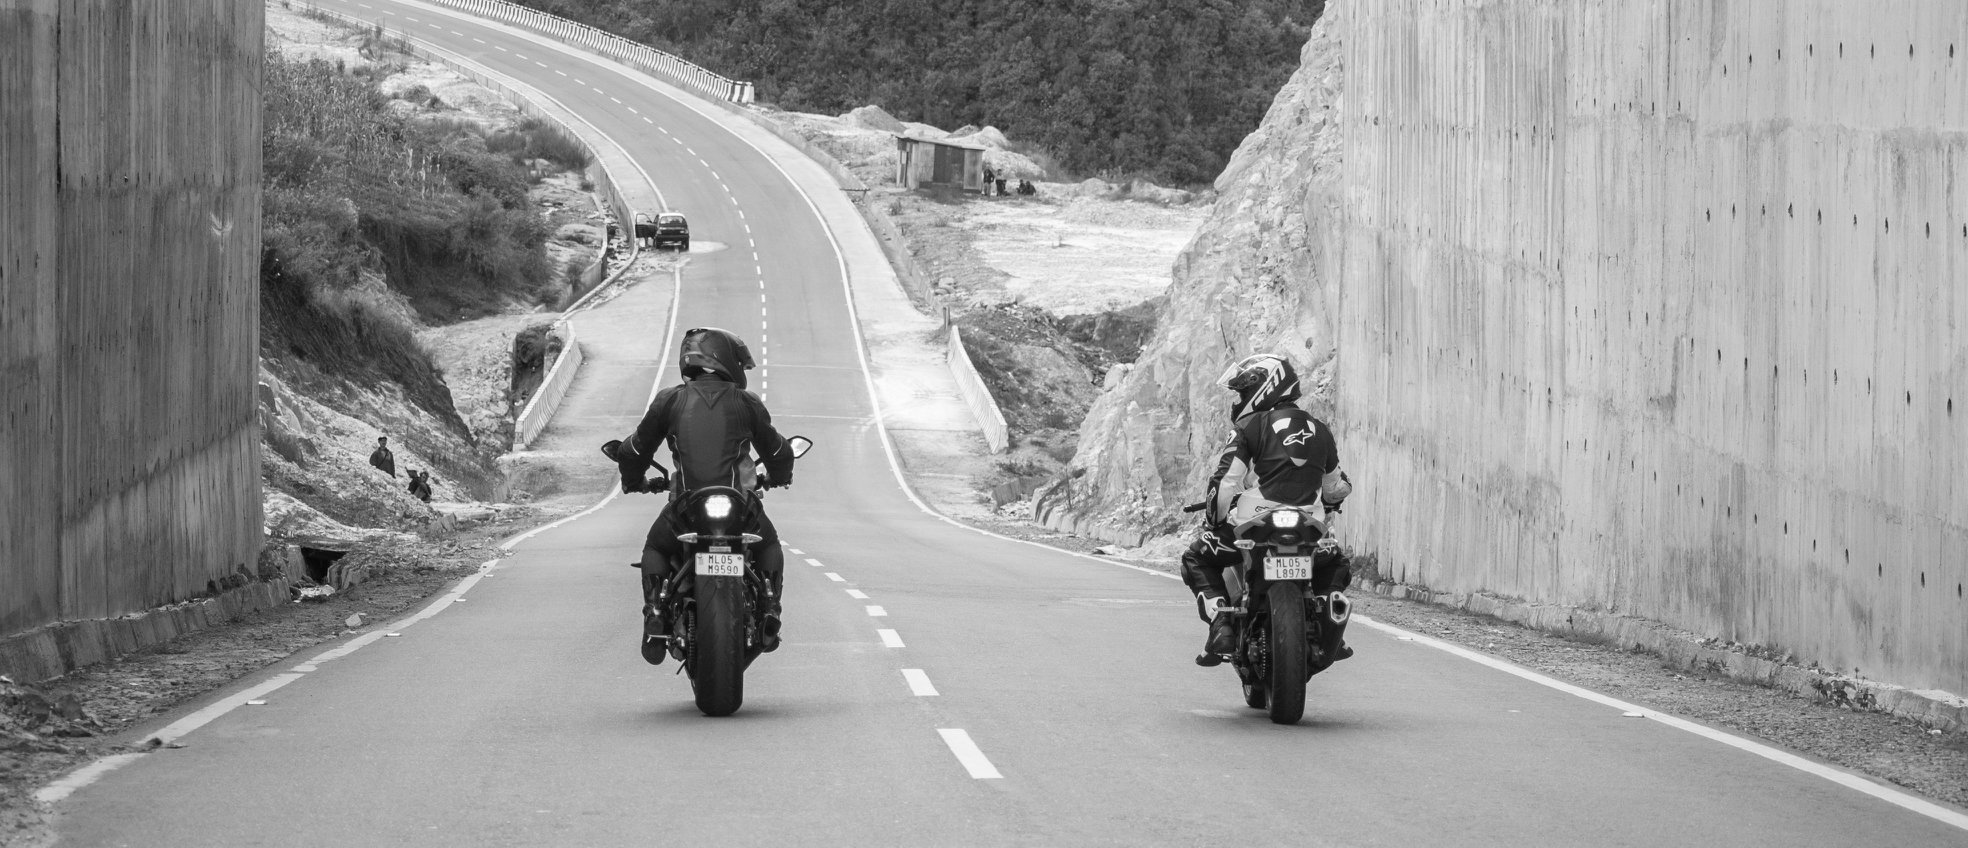 meet local bikers search